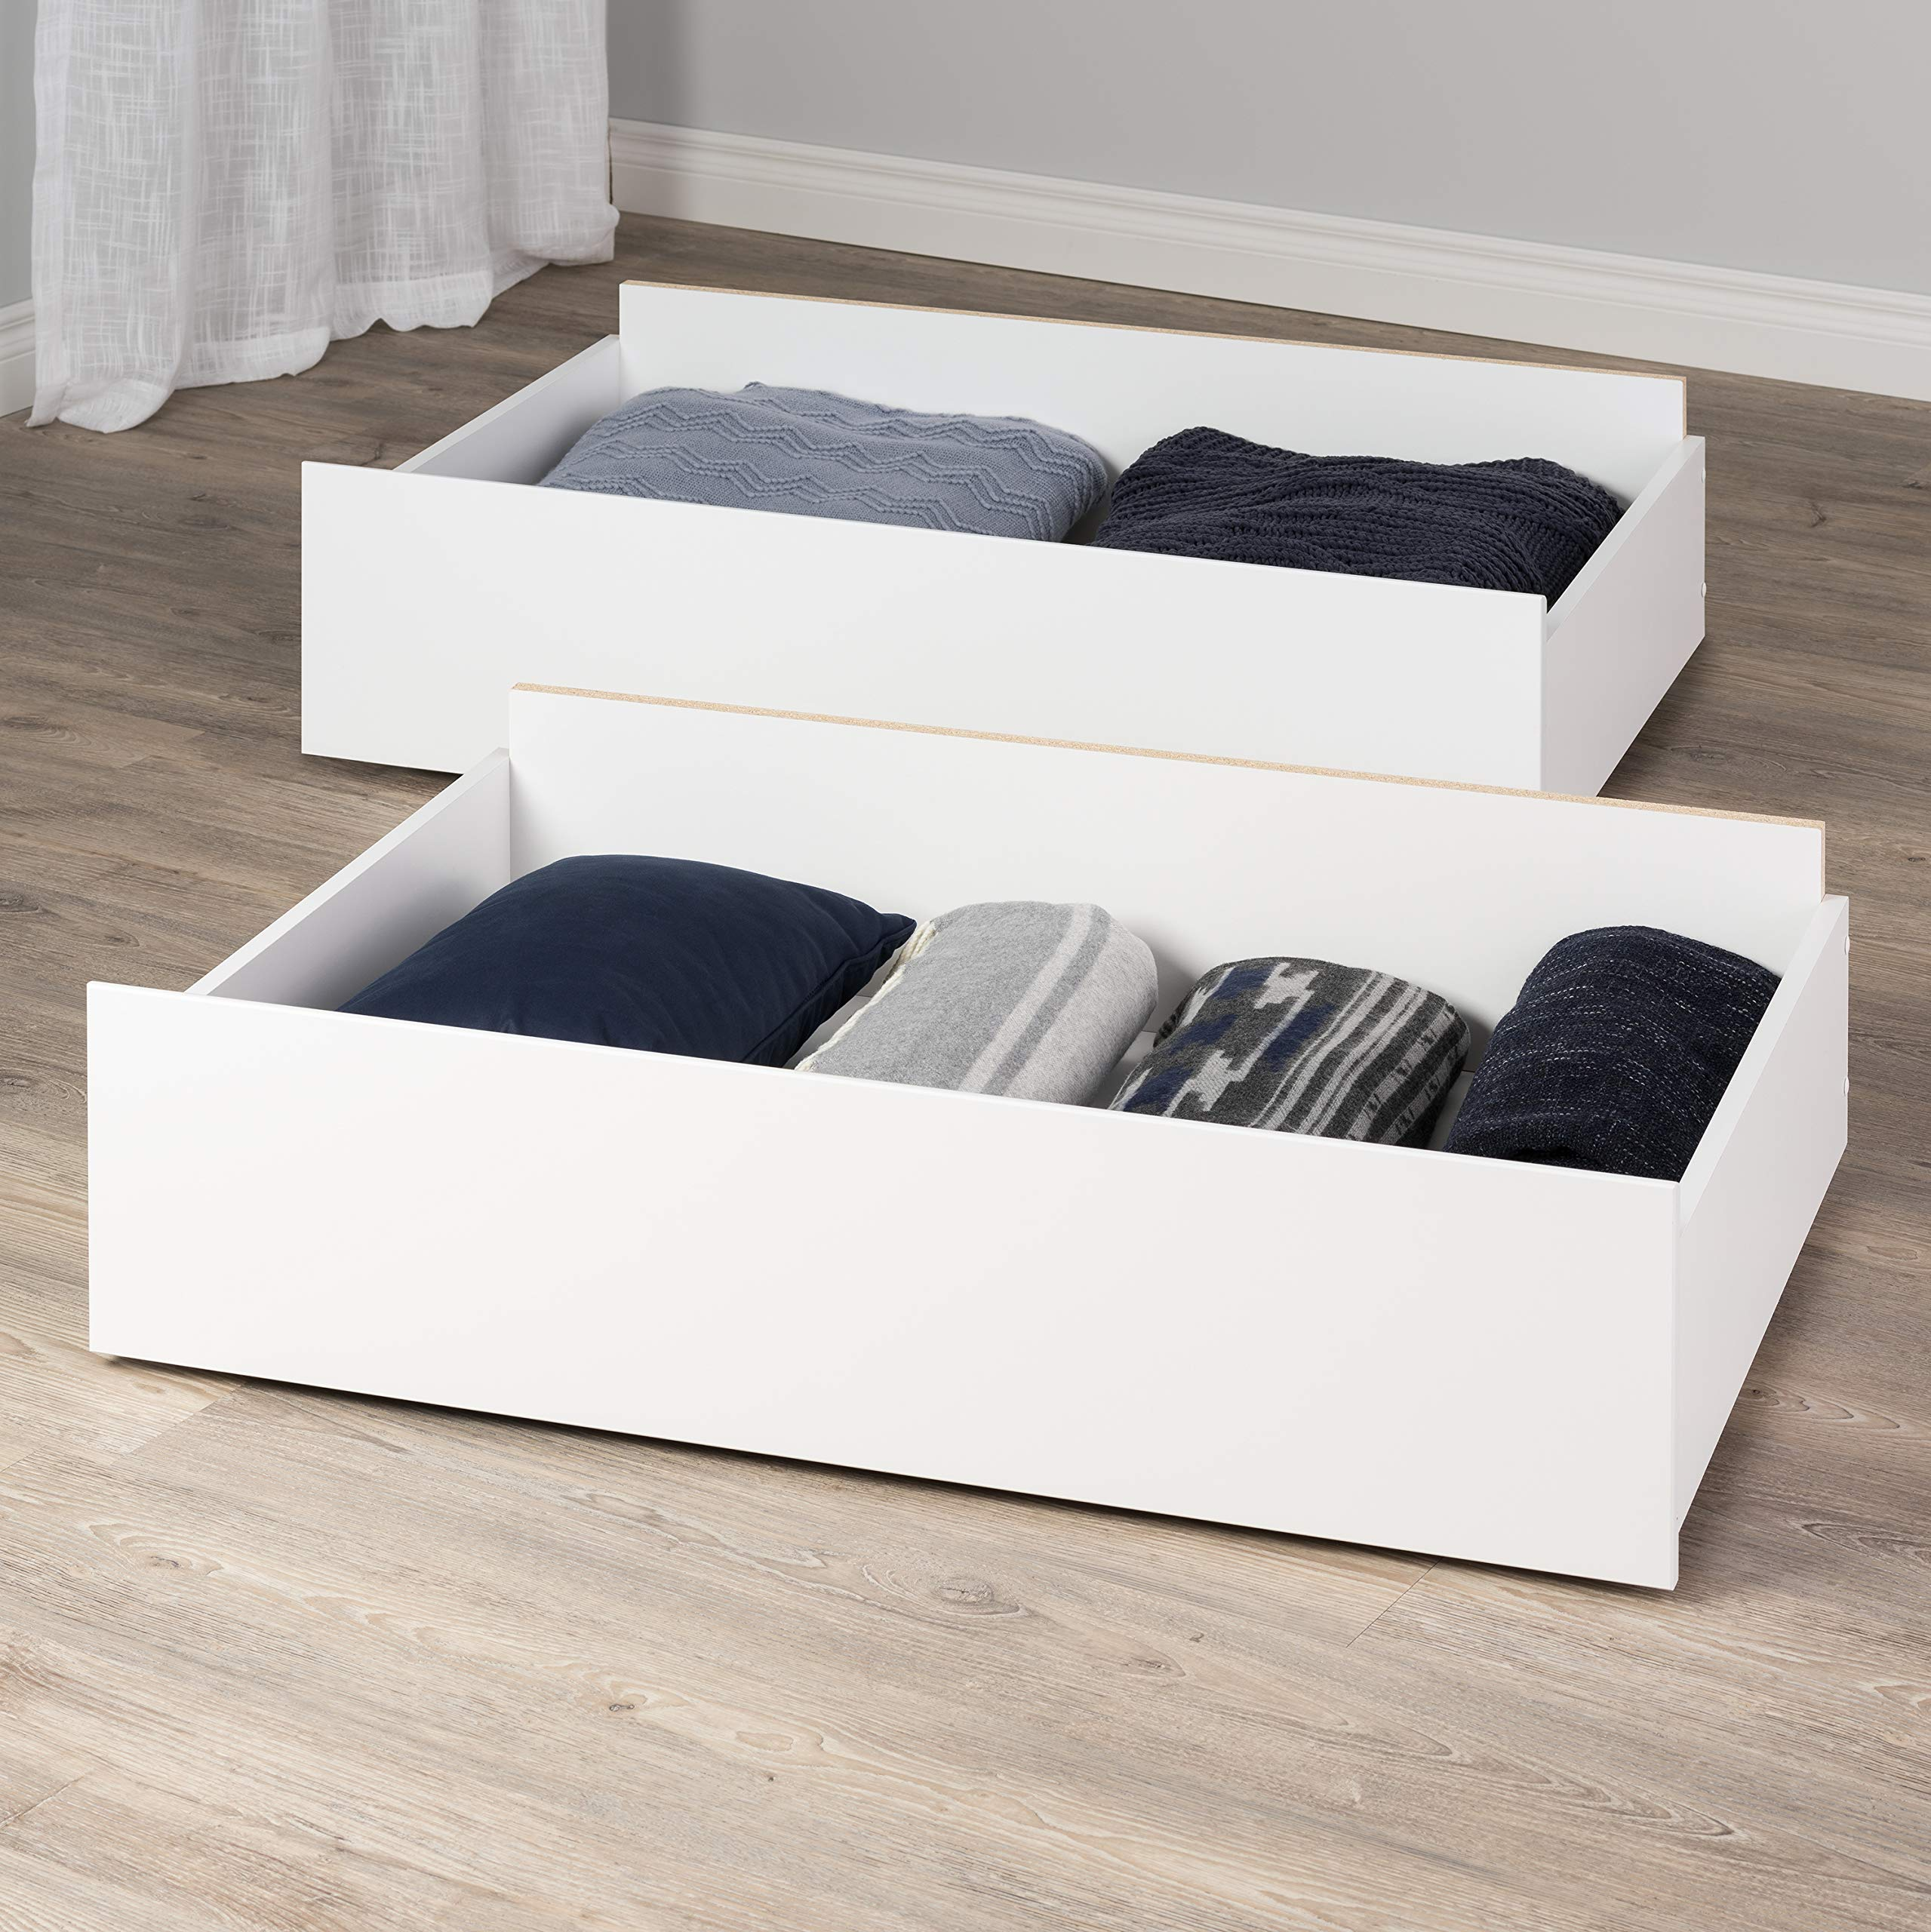 Prepac WBQK-1303-1 Select, White Storage Drawers on Wheels - Set of 2 Queen/King by Prepac